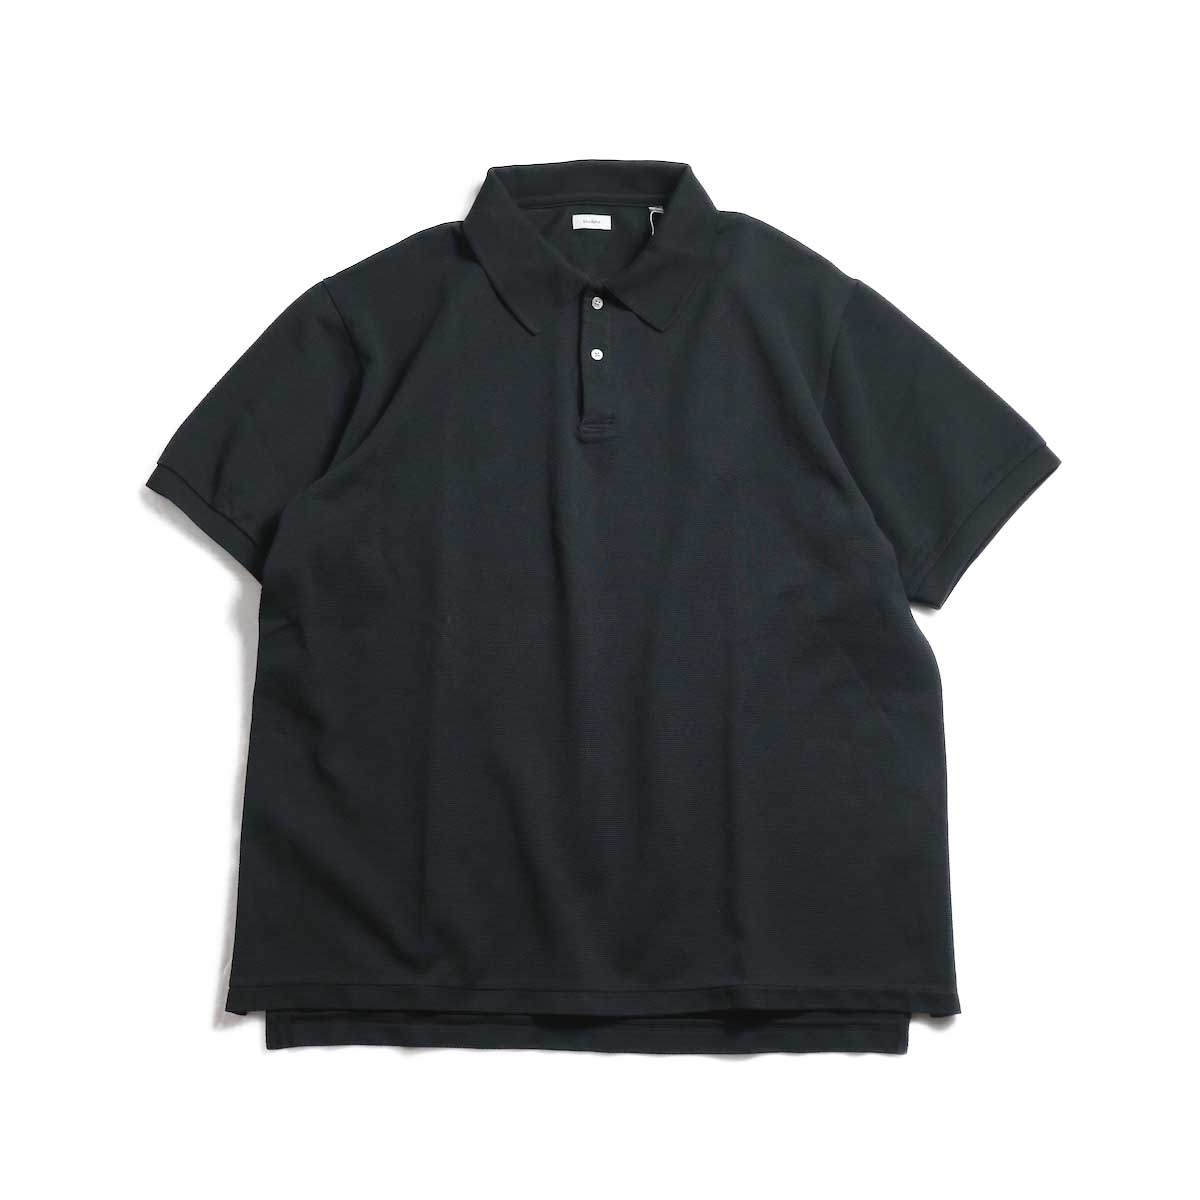 blurhms / Seed Stitch Polo Shirt -Black